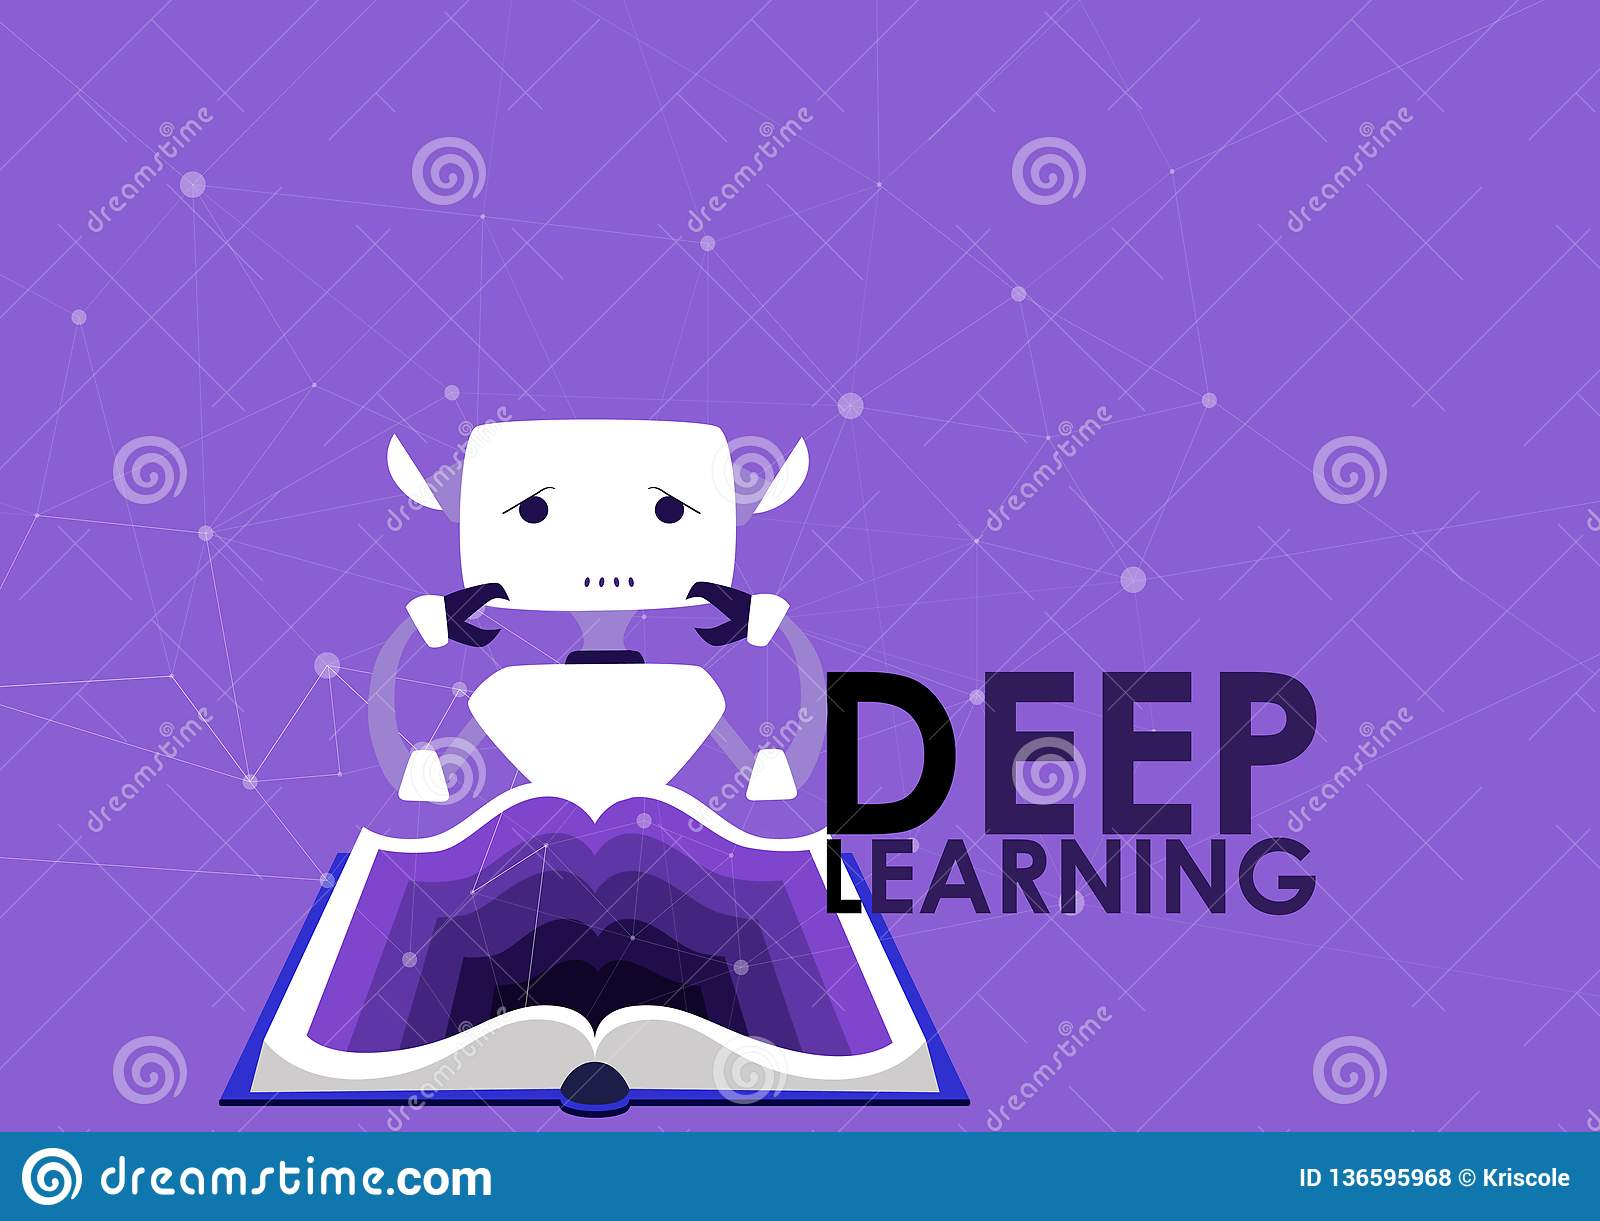 Deep Learning Algorithms Of Artificial Intelligence, Concept